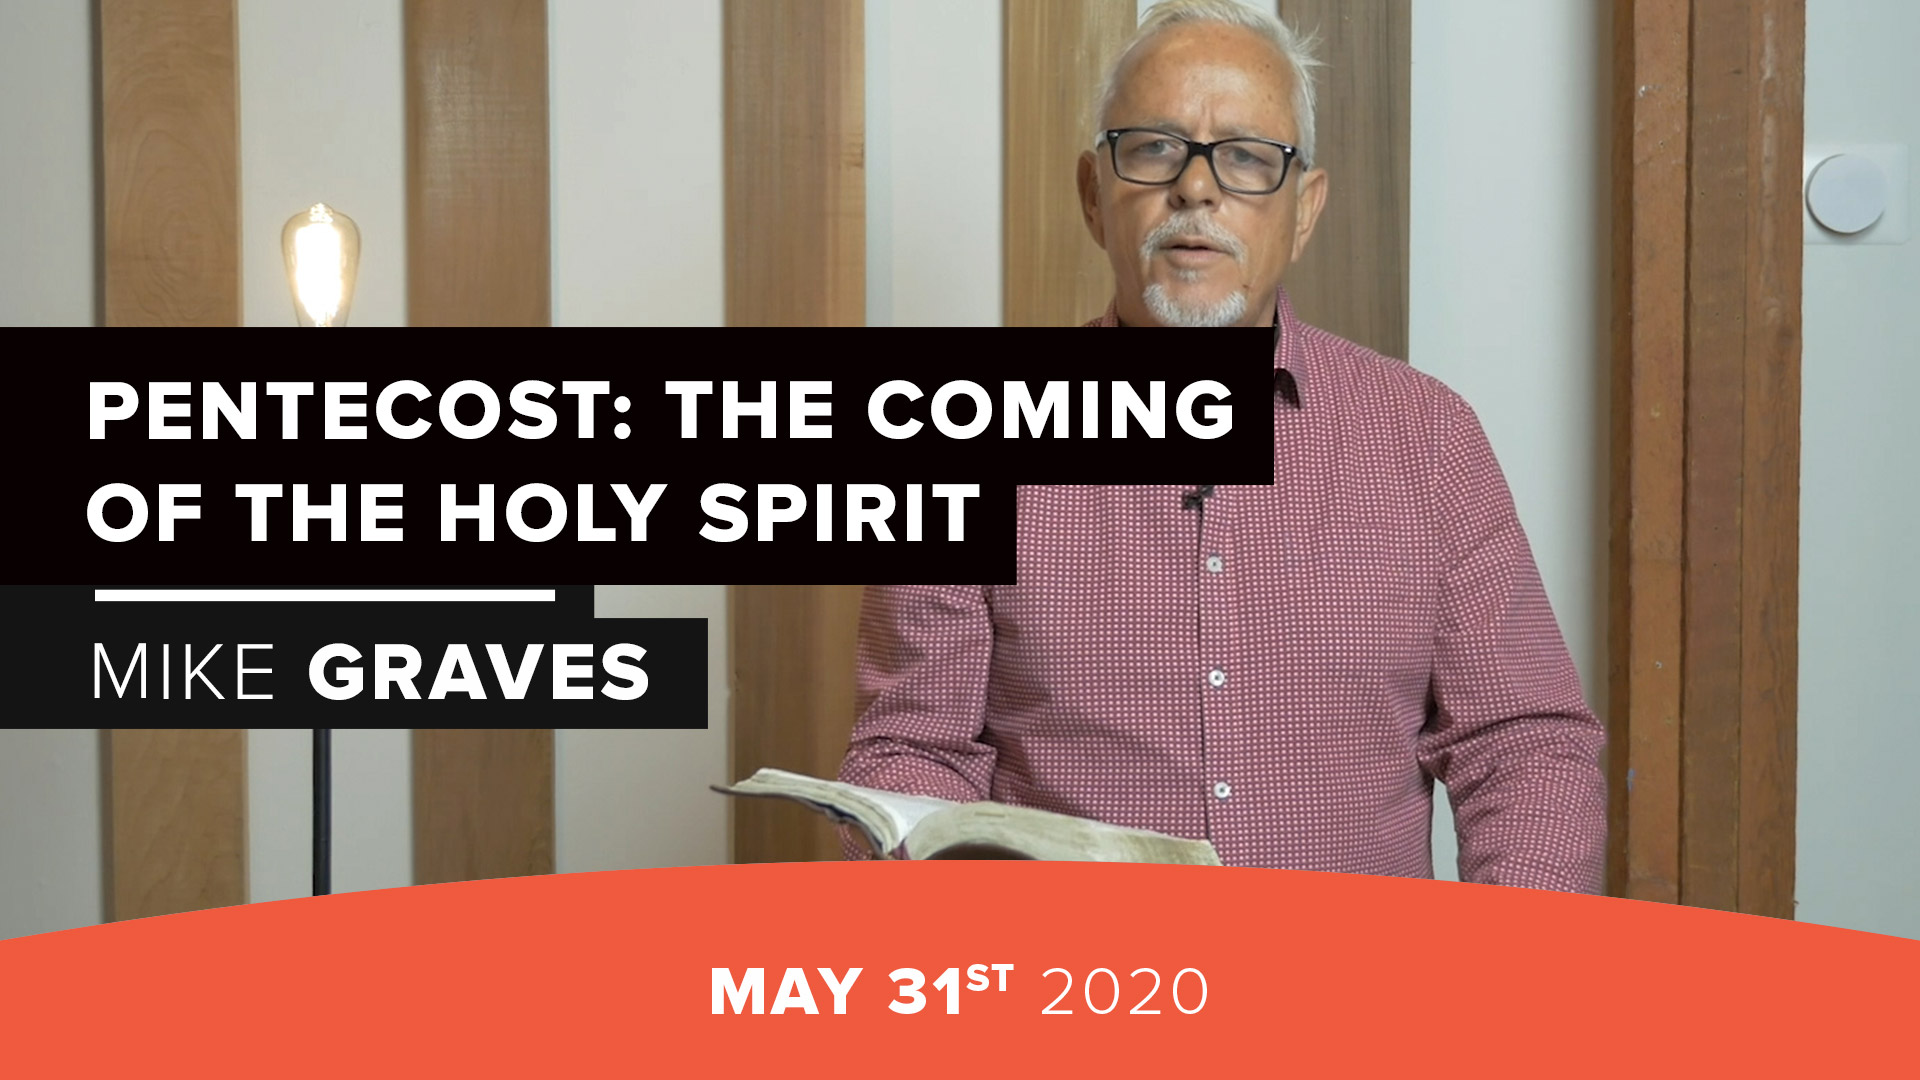 Pentecost: The coming of the Holy Spirit